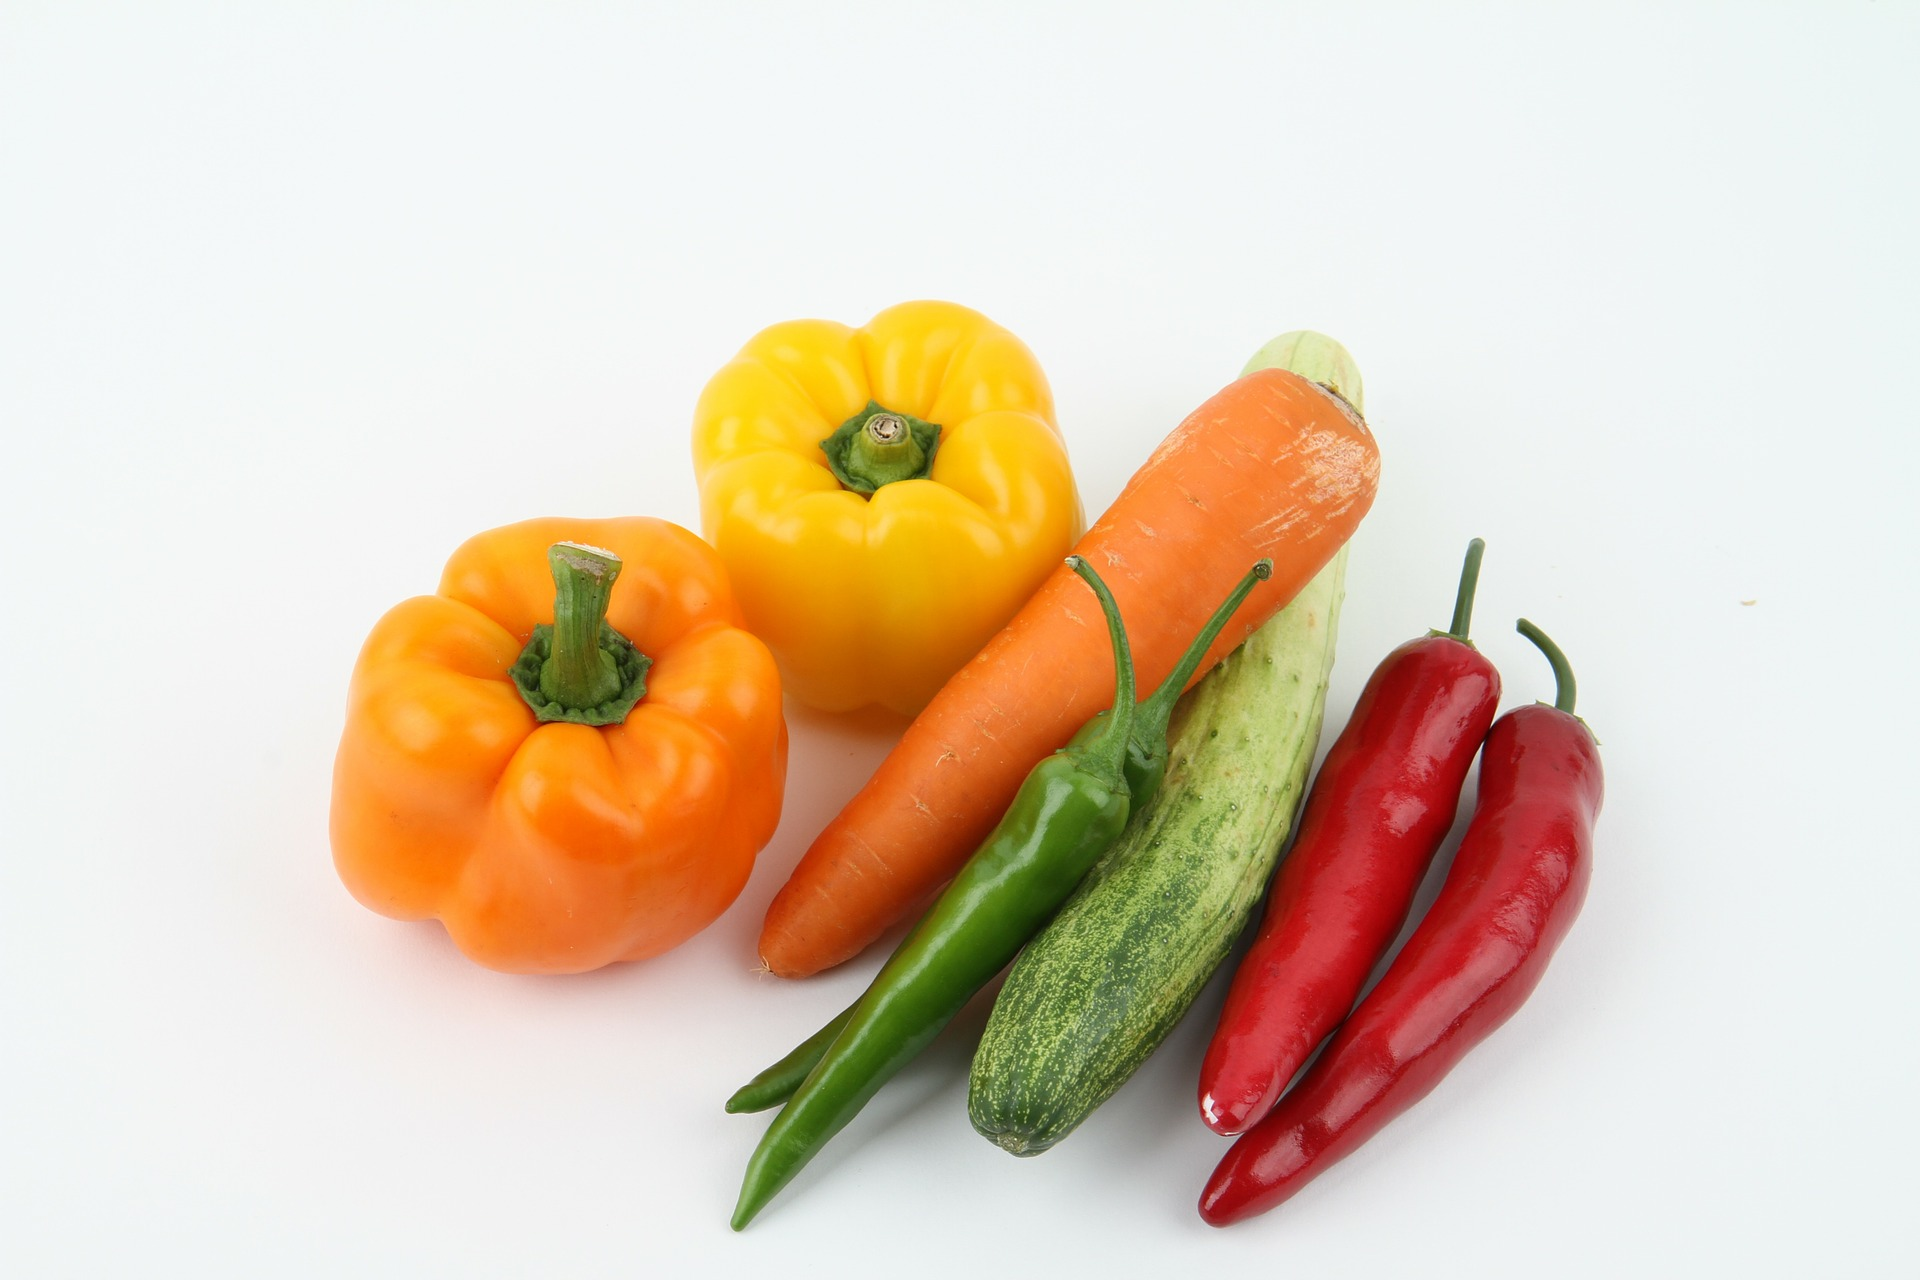 reduce energy density by adding vegetables - pictured capsicum, carrot, cucumber and chilli